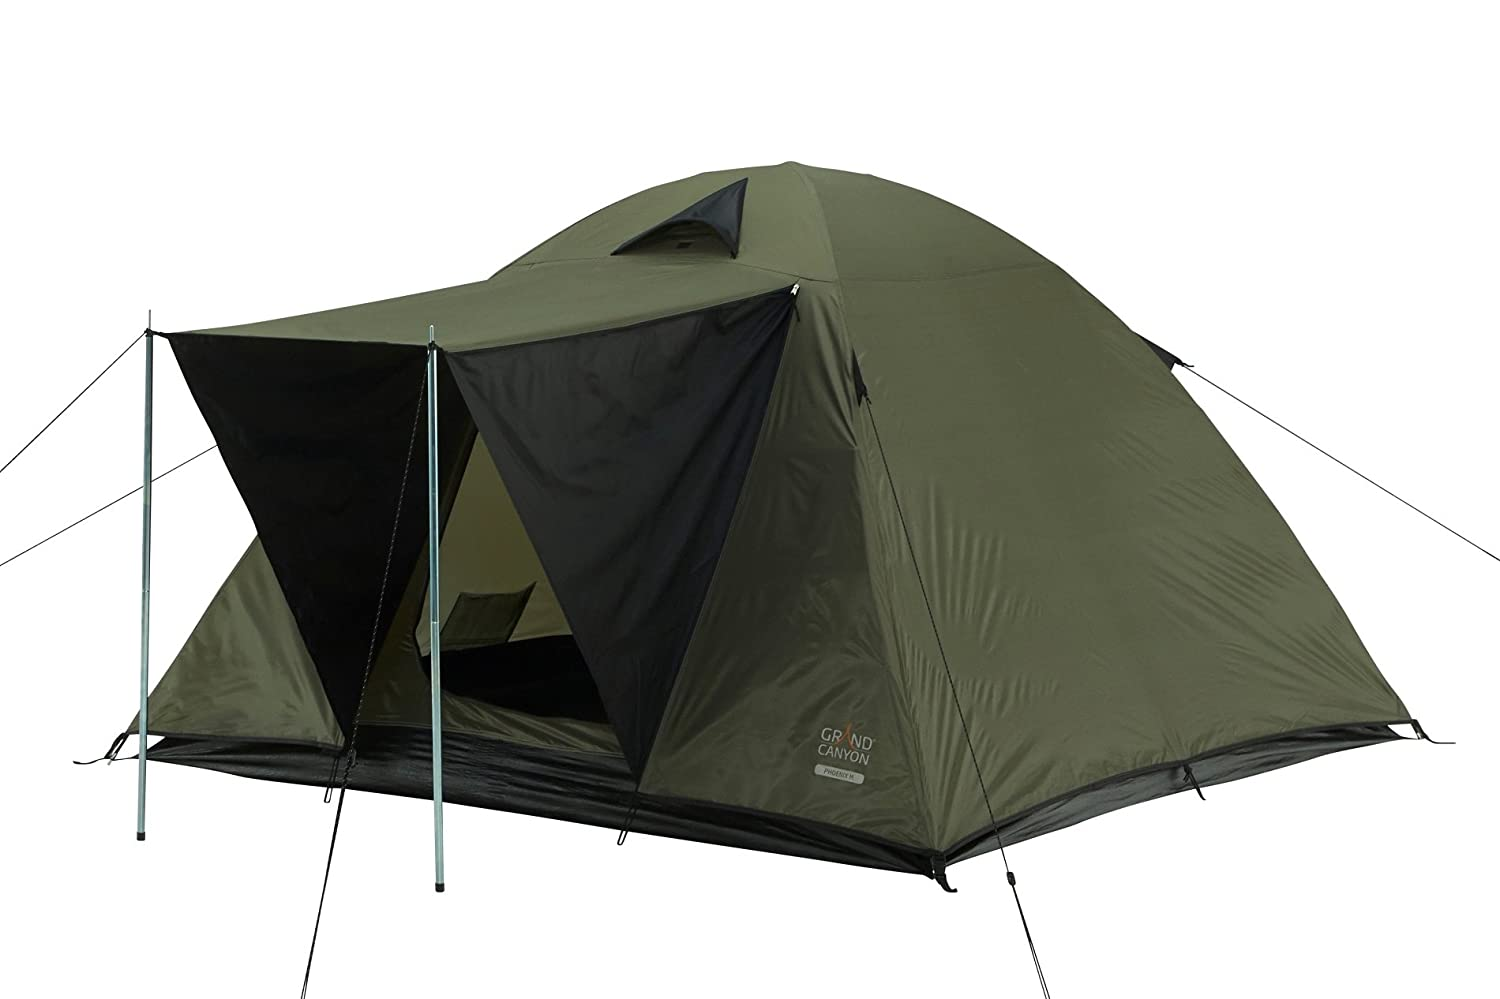 GRAND CANYON Phoenix L - dome tent, different colors green 602012 Grand Canyon (GRAGK)